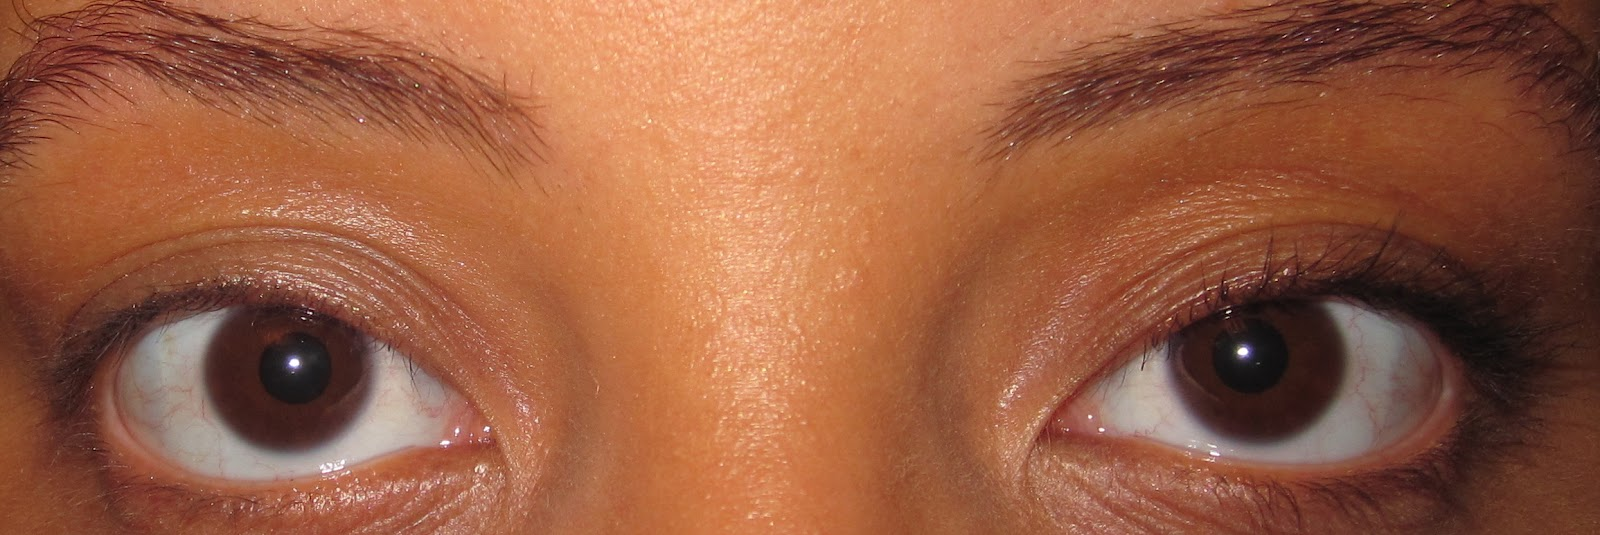 Naturally Glossy Mascara by Clinique #5